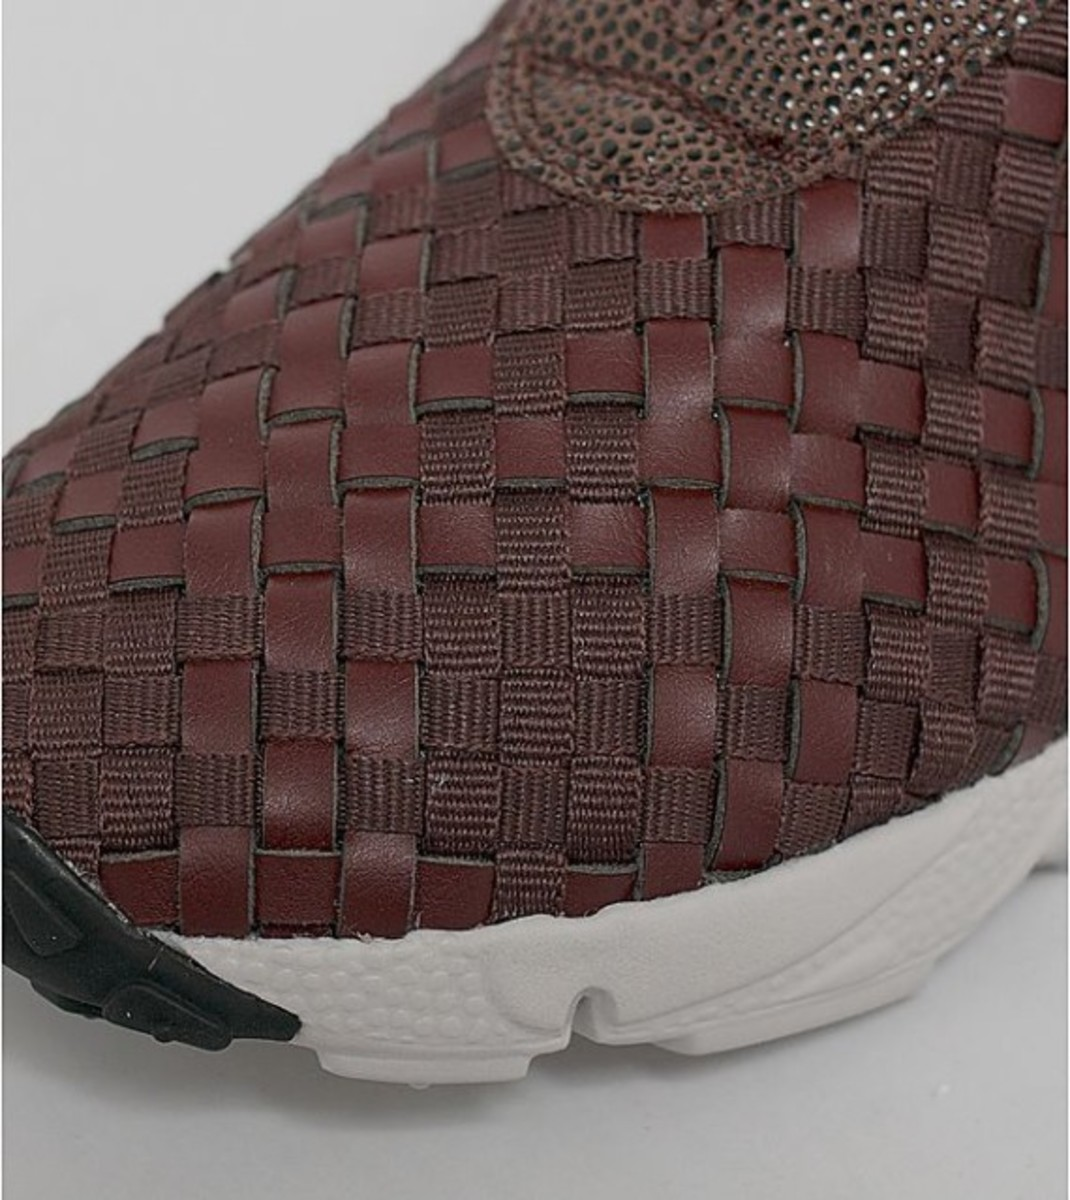 nike-air-footscape-woven-desert-chukka-brown-leather-03